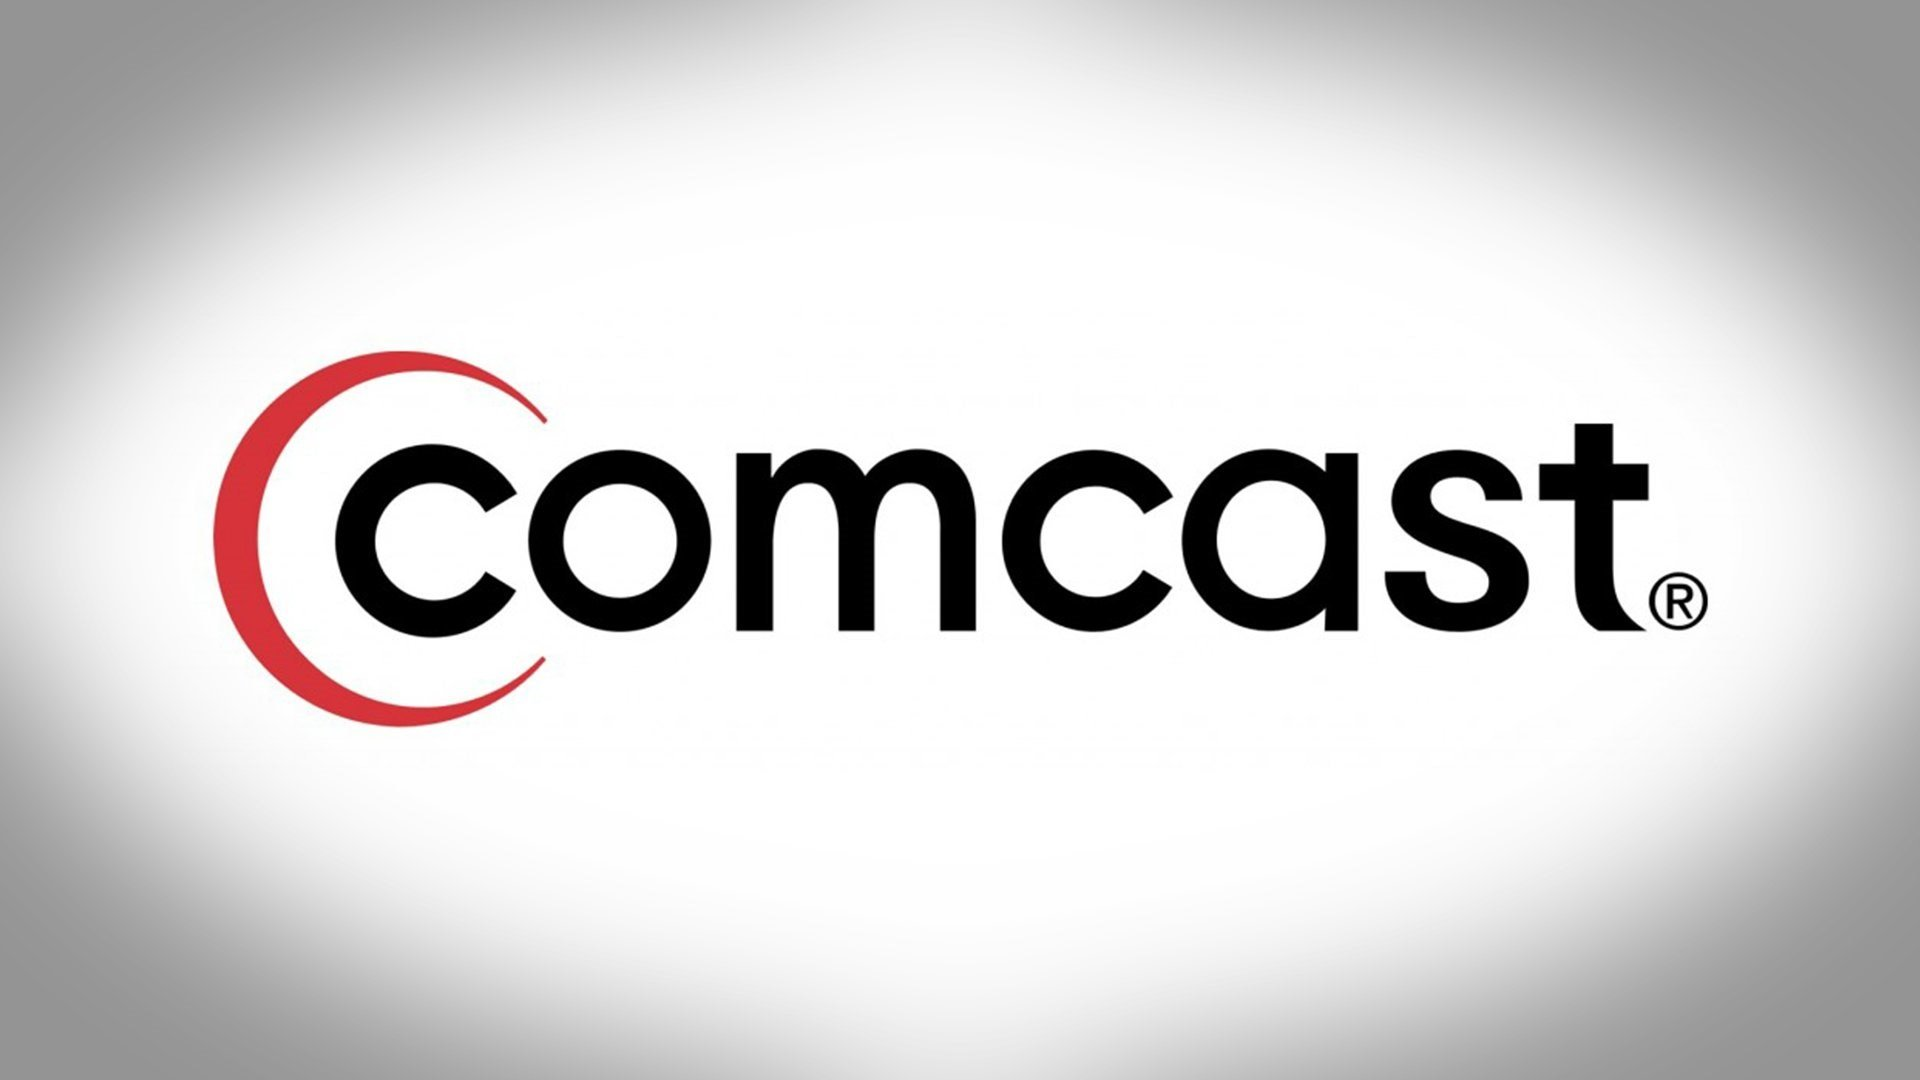 Comcast, Verizon join race for Fox assets